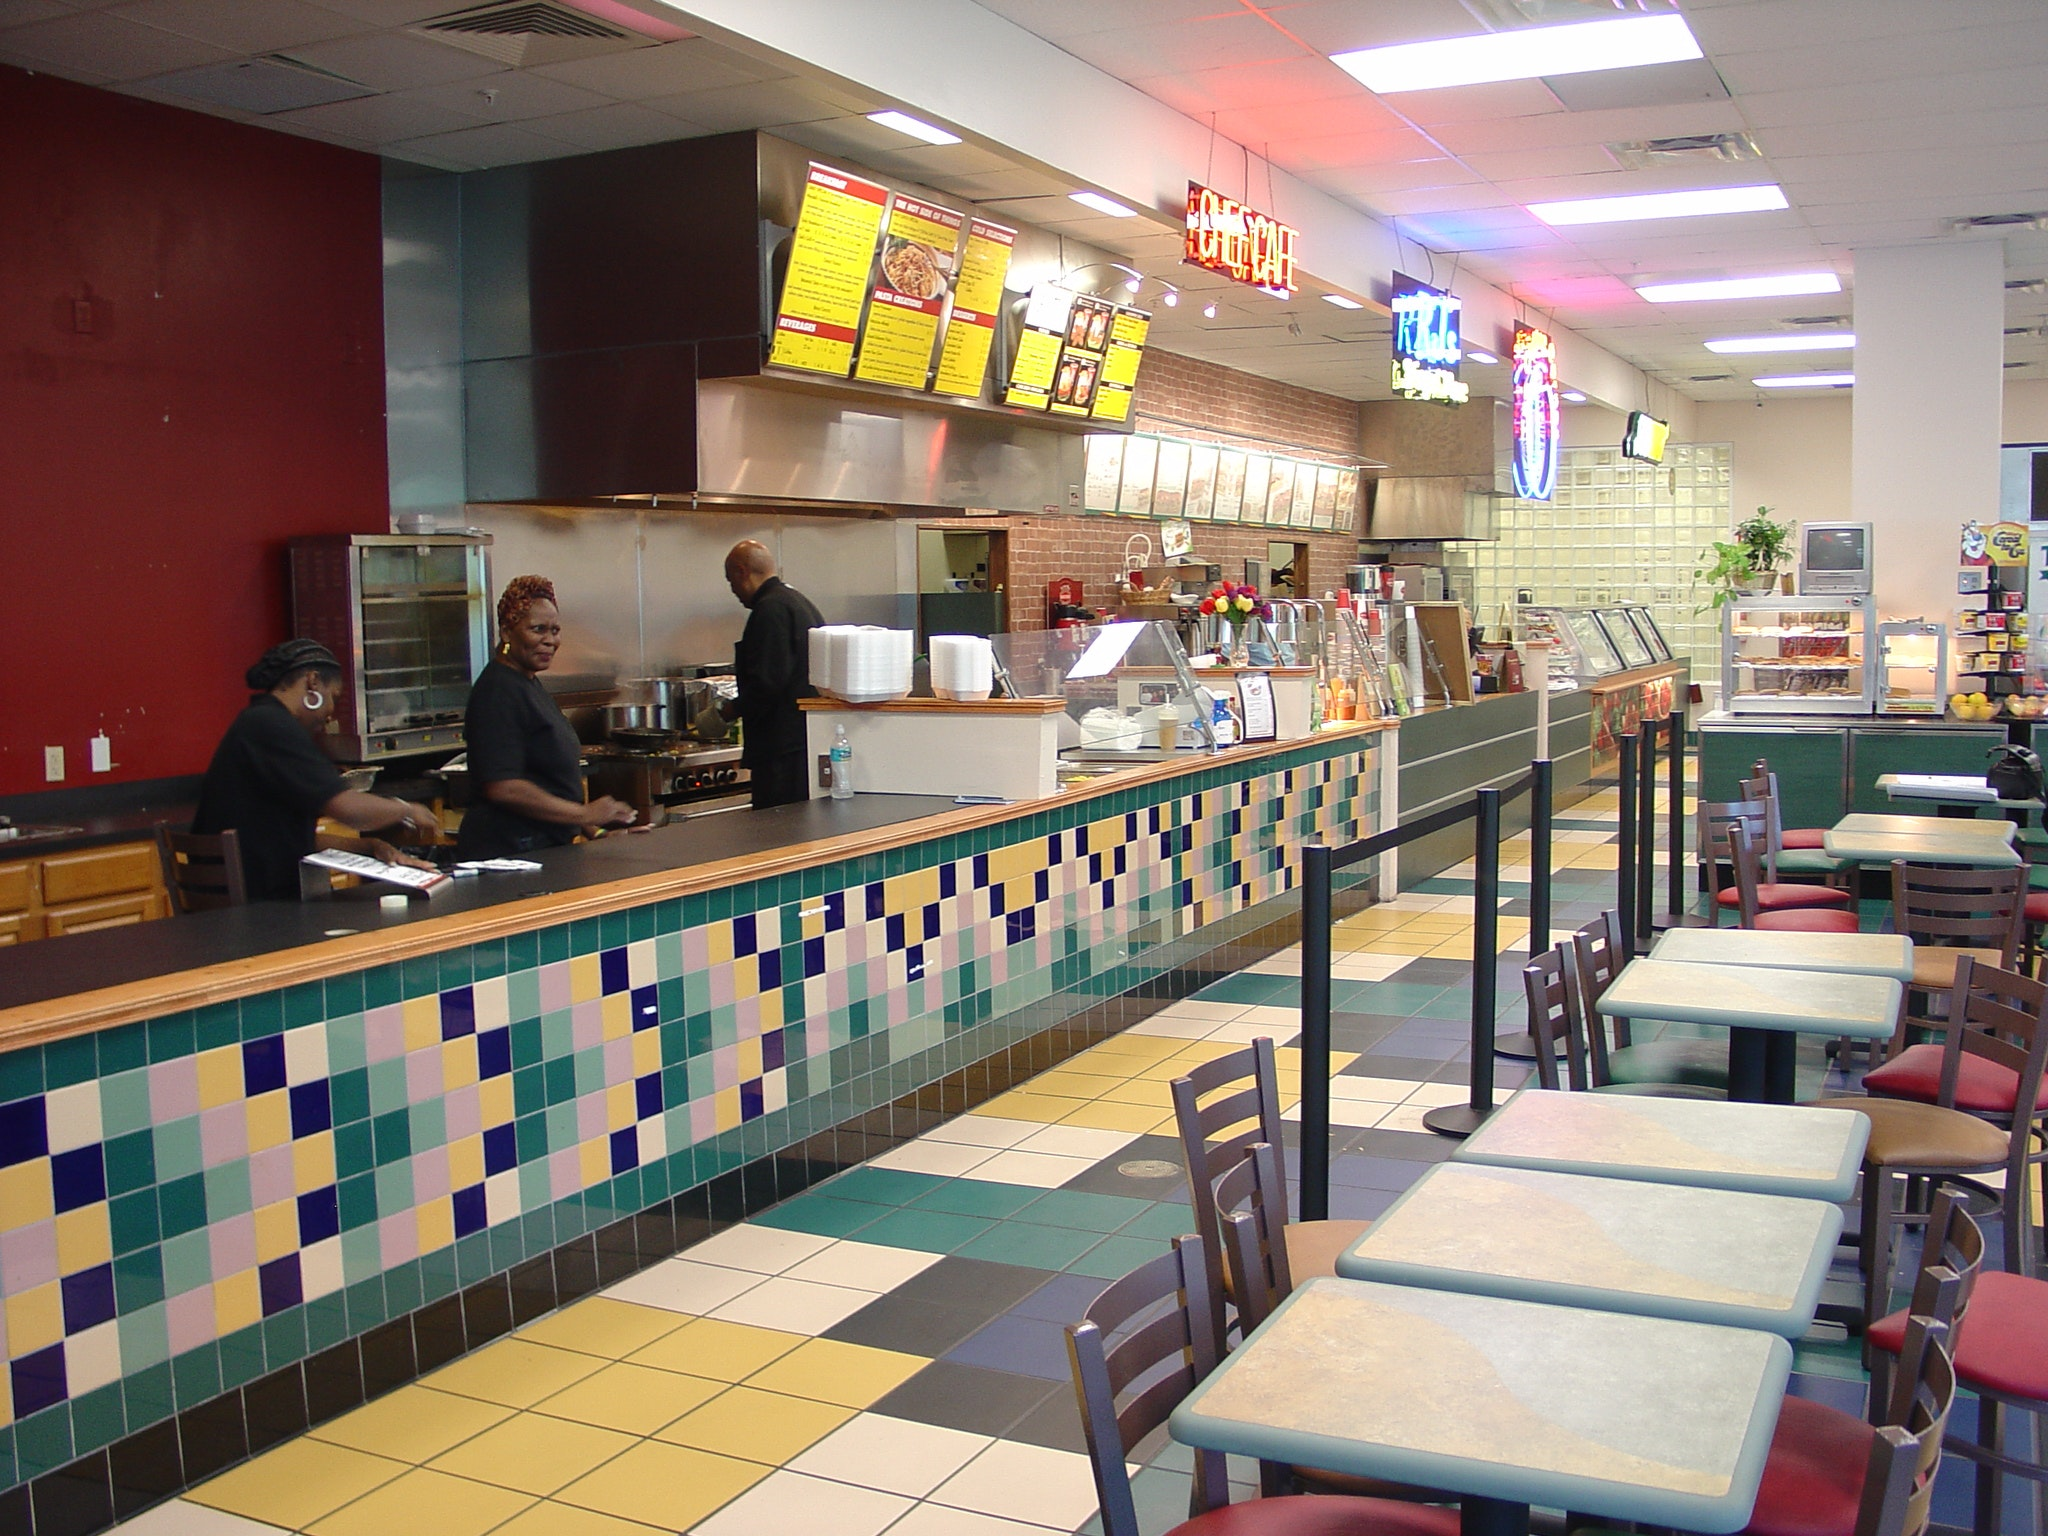 Subway Interior Food Court James Wells Archinect